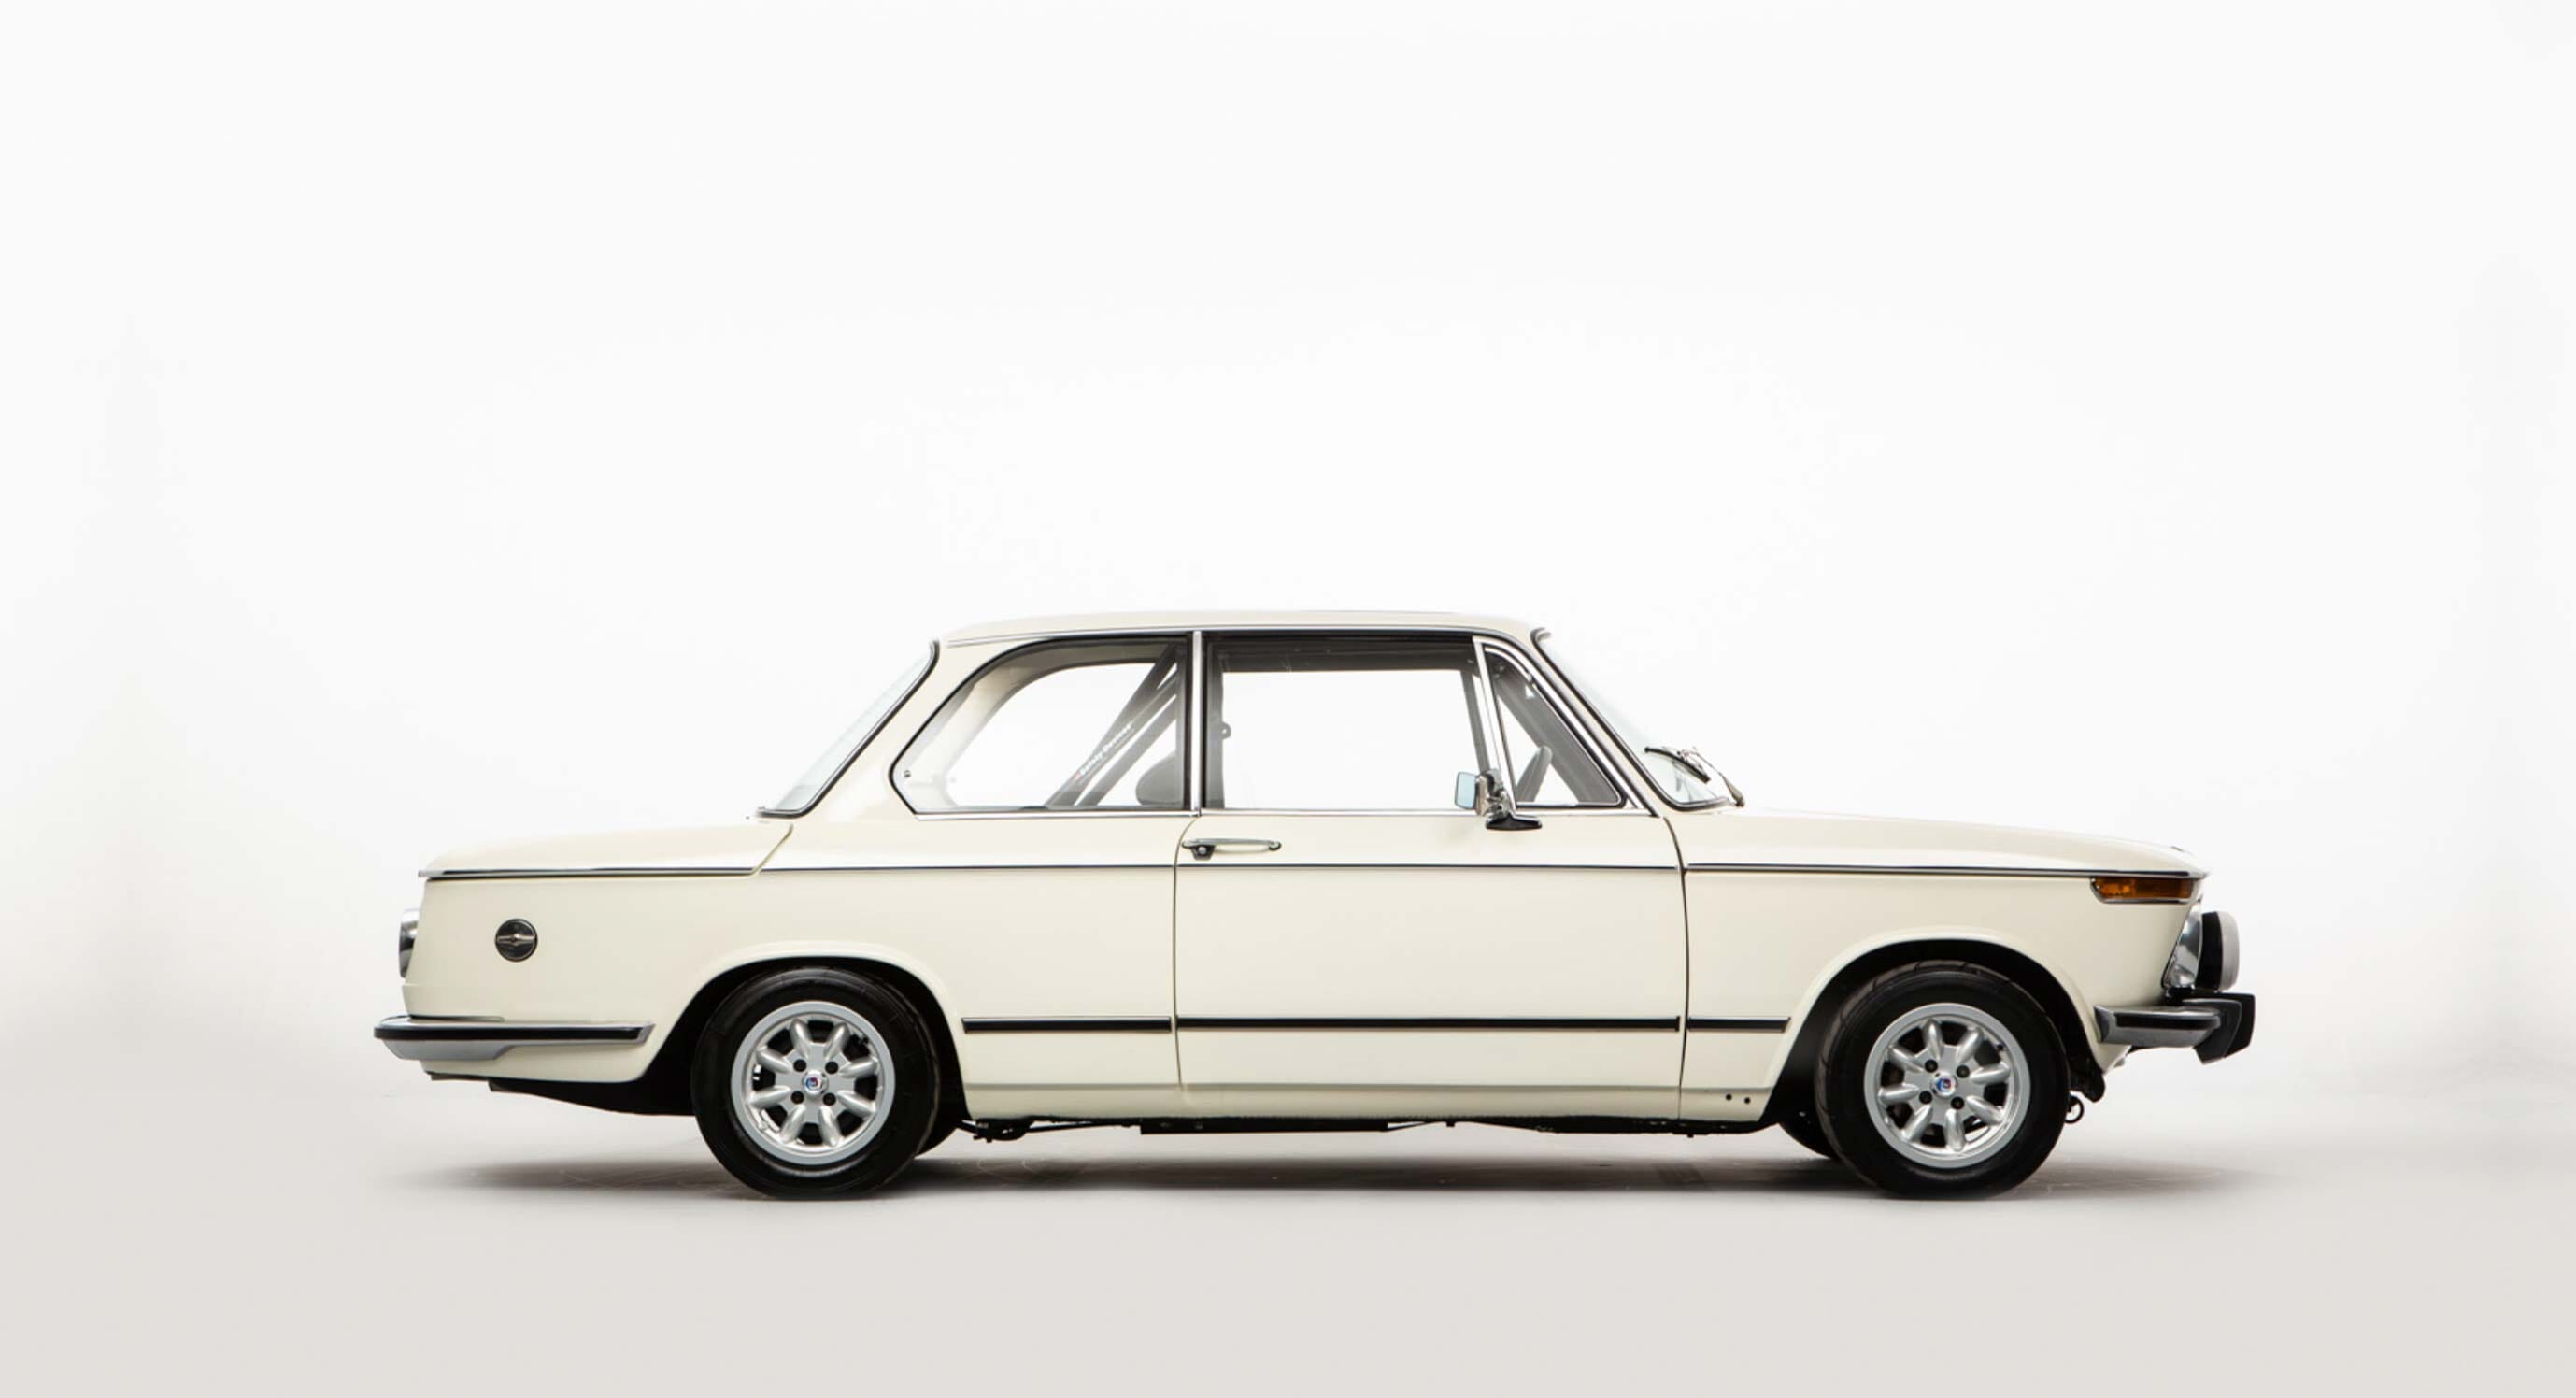 The BMW 2002 set the standard for its style